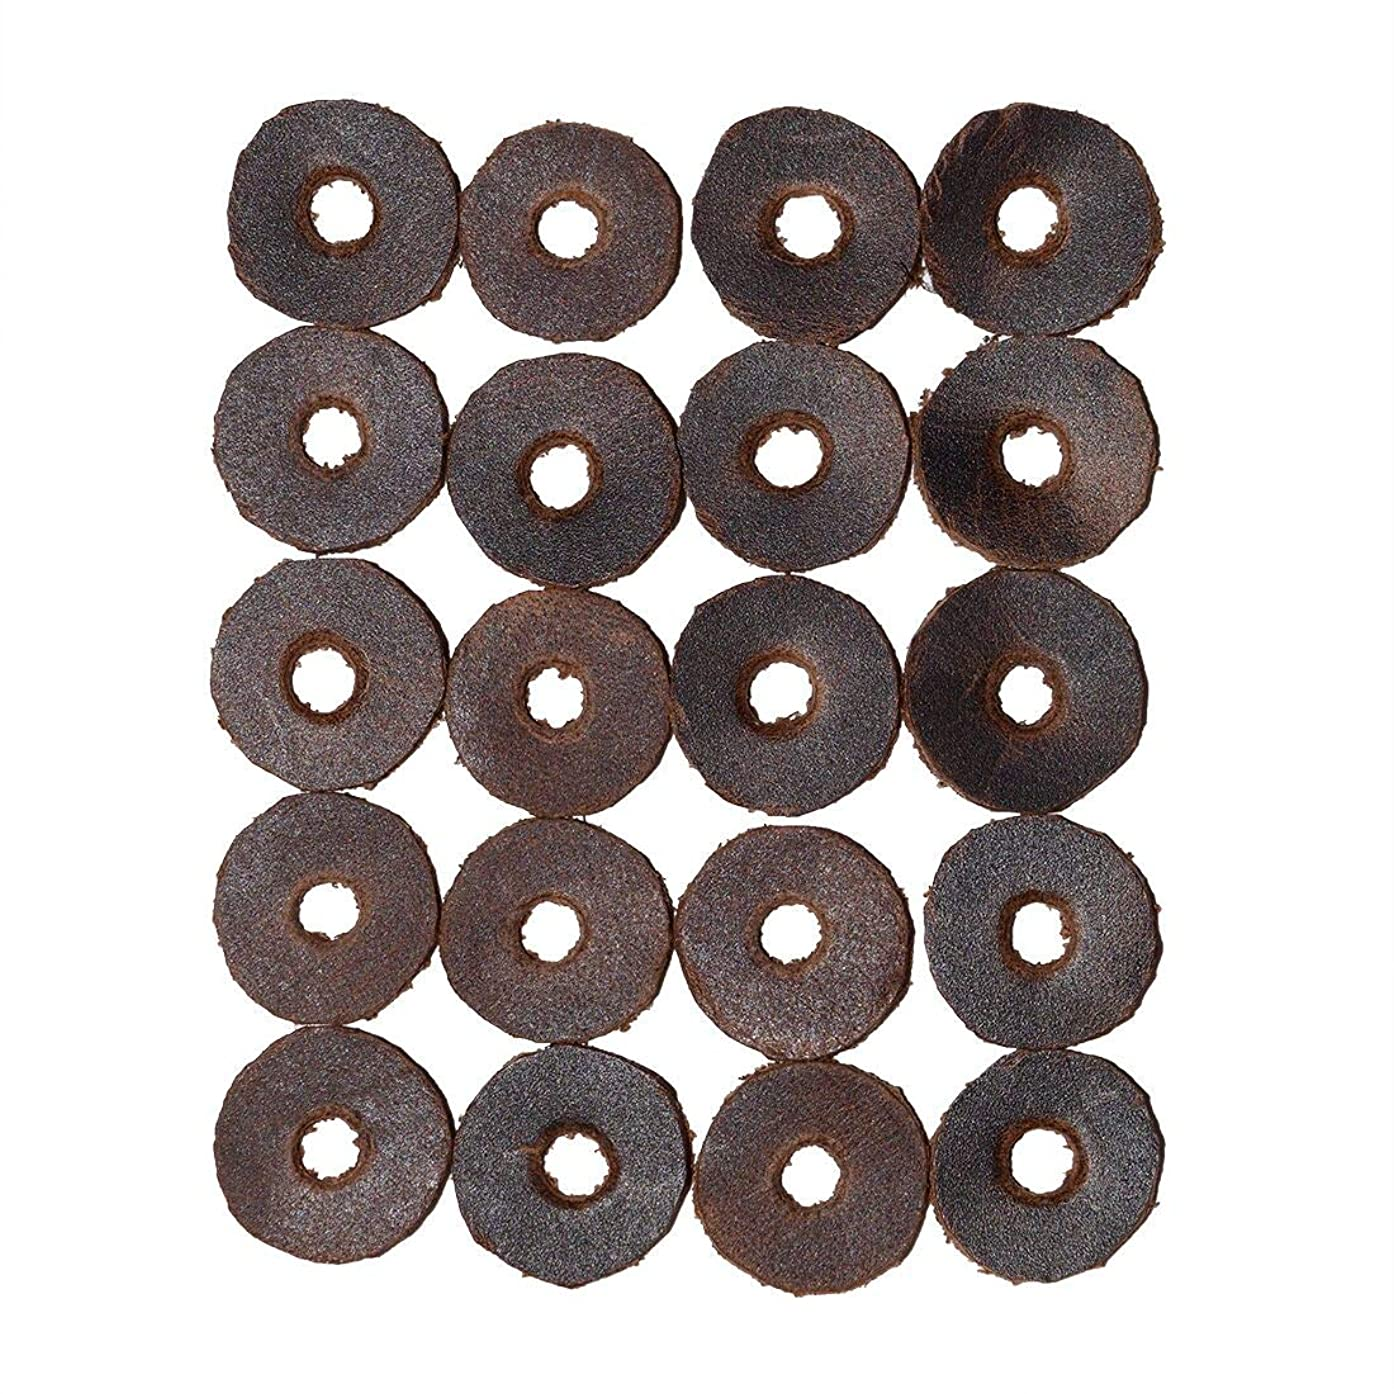 Hide & Drink, Leather Cushion Washers (6/8 in.) Diameter, 1.8mm (Set of 20) for Mounting Bicycle Fenders & Racks/Protects New Paint/Furniture, Handmade Includes 101 Year Warranty :: Bourbon Brown